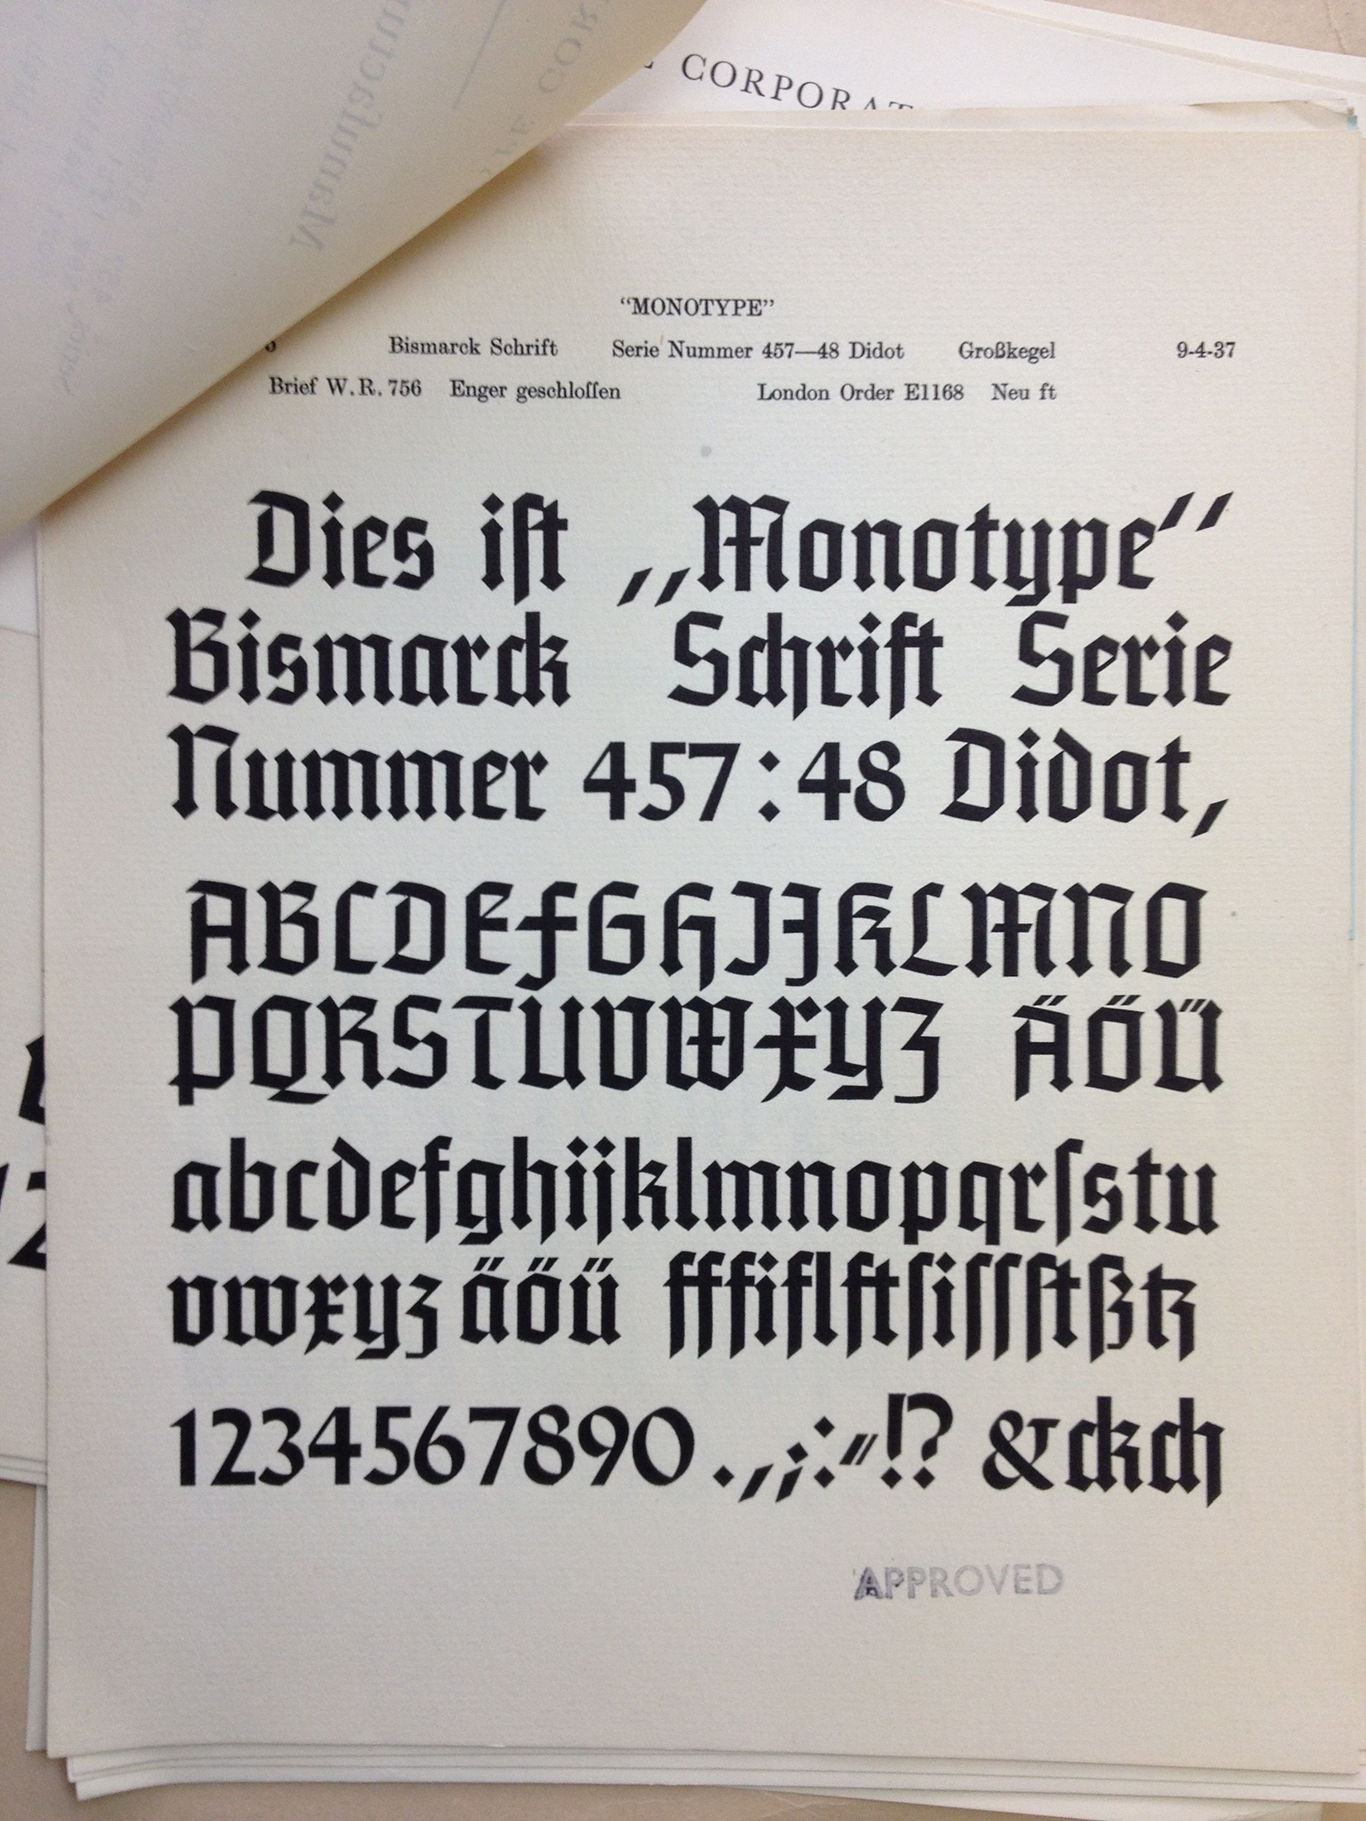 From Looking Through The Notes On Bismarck It Becomes Clear That Monotype Was Hoping This Type Would Be Appealing To English Readers And Or Clients